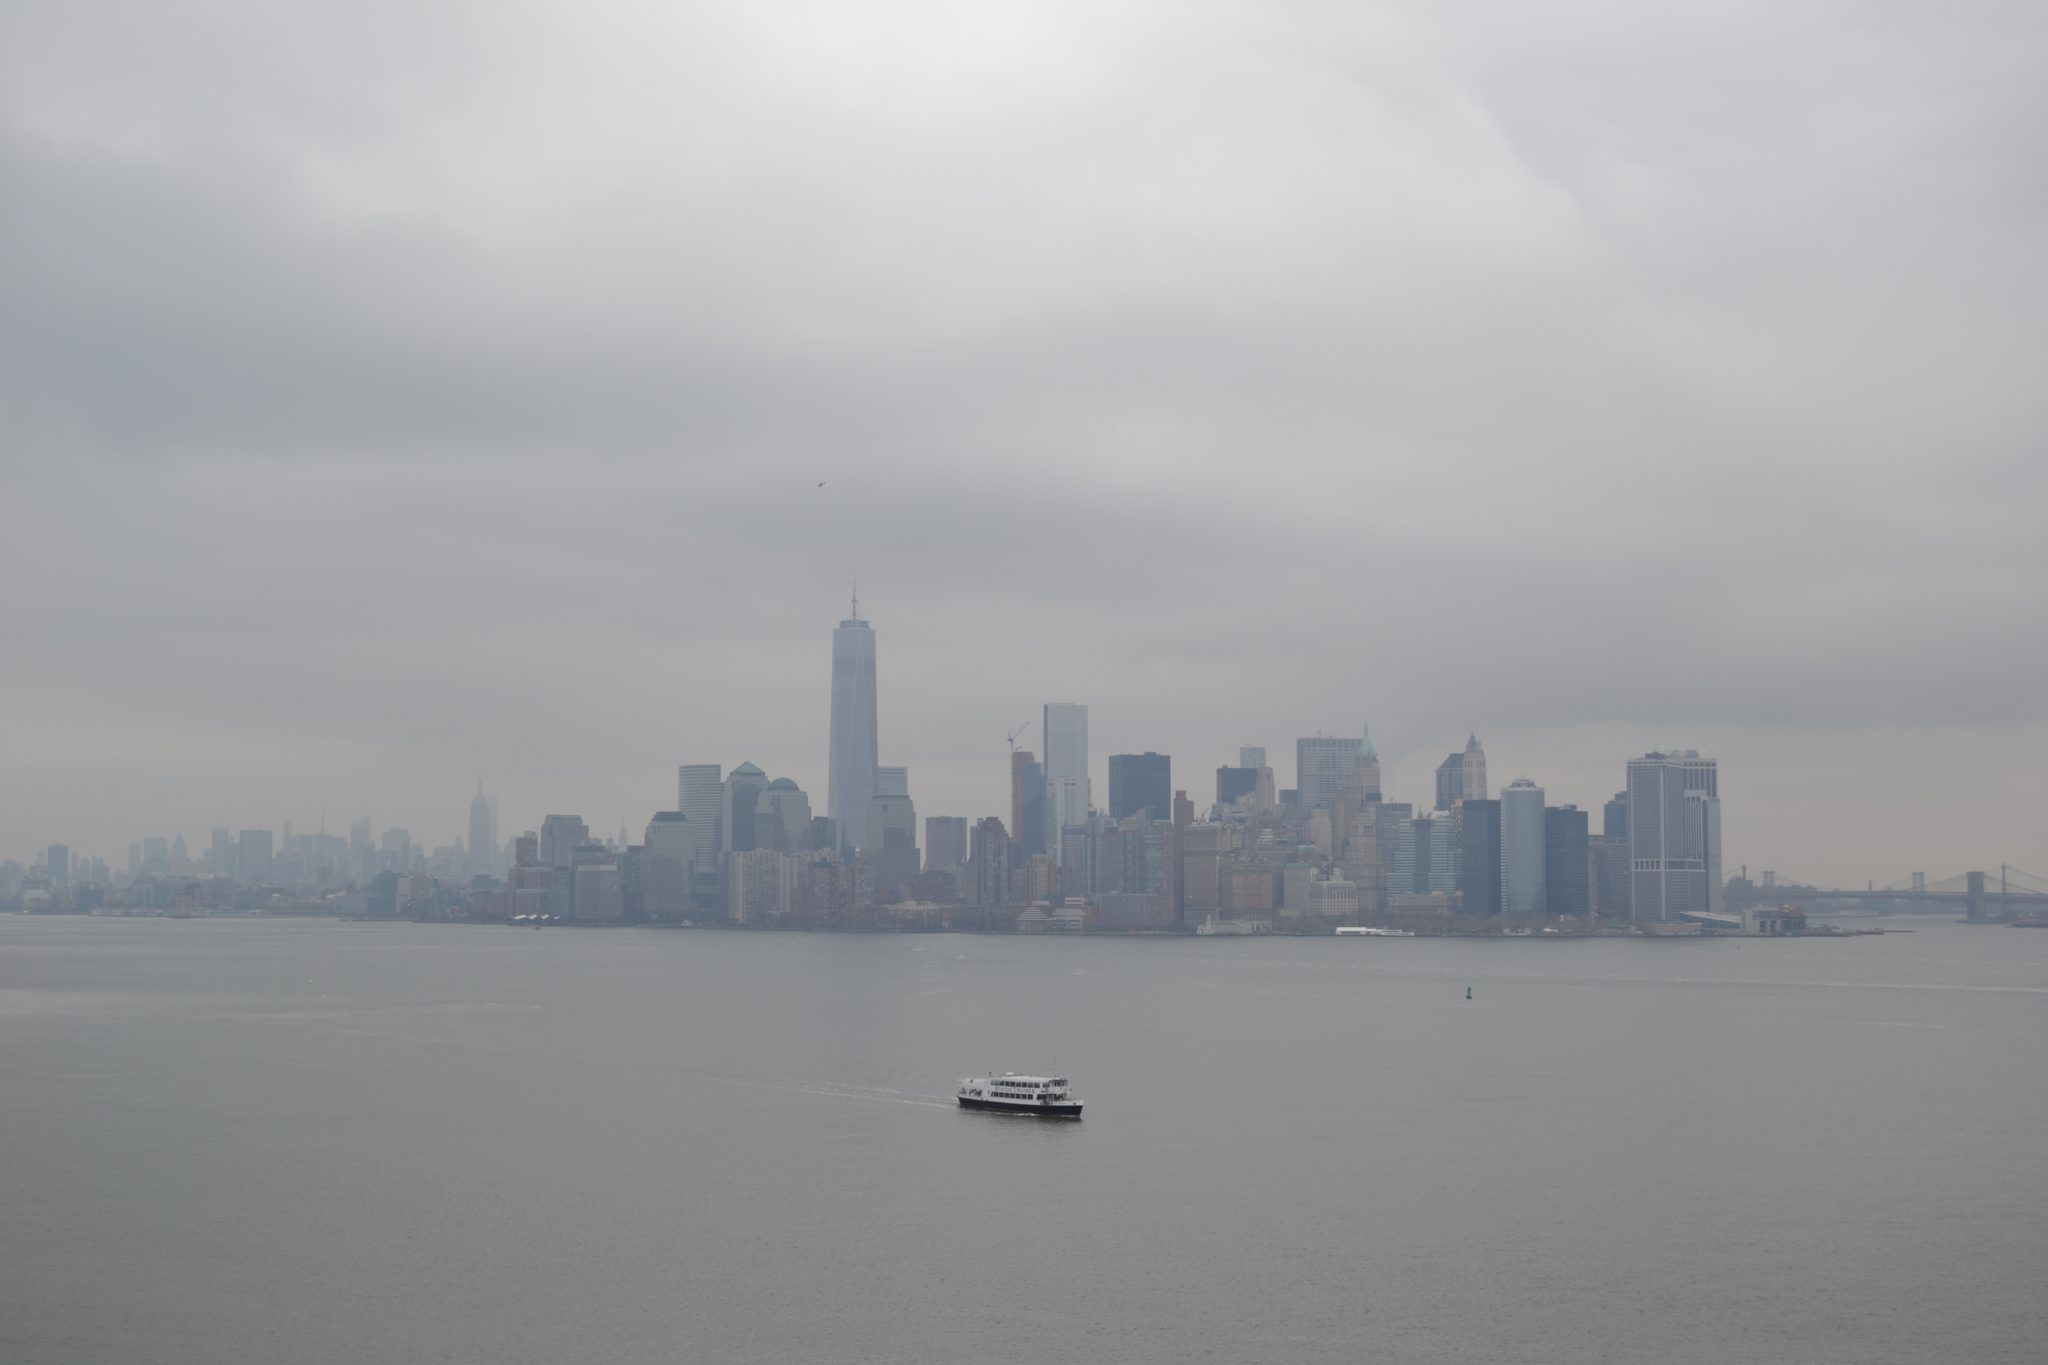 New York Part 4: Ellis Island & Statue of Liberty - dsc 0442